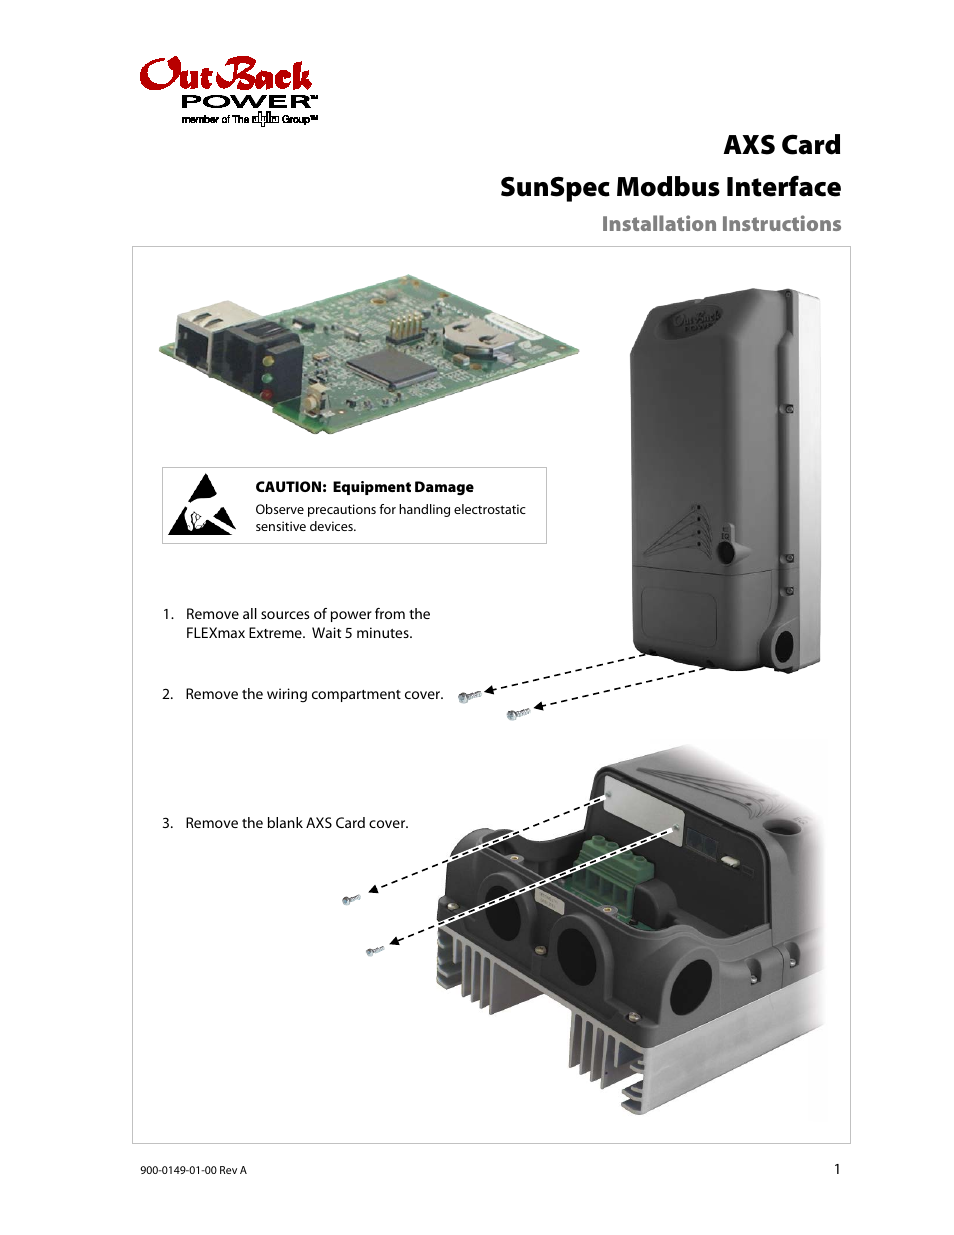 Outback Power Systems Axs Card Sunspec Modbus Interface Installation Wiring Specification Instructions User Manual 2 Pages Also For Flexmax Extreme